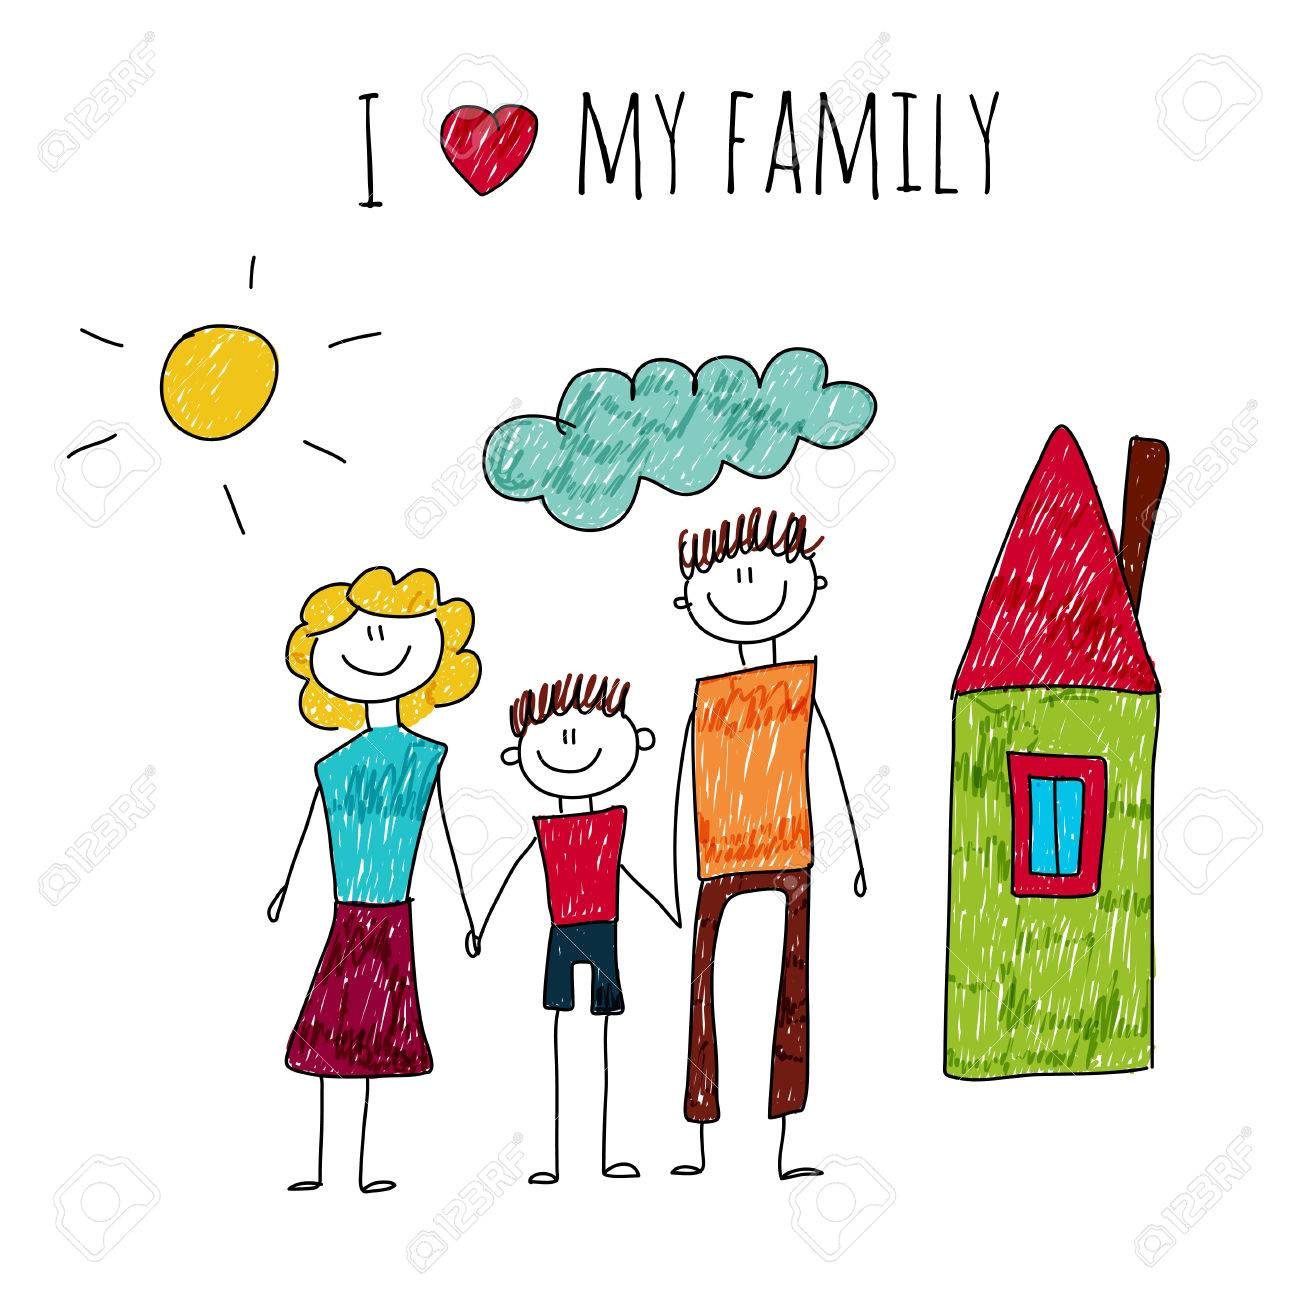 My Family Drawing At Getdrawings